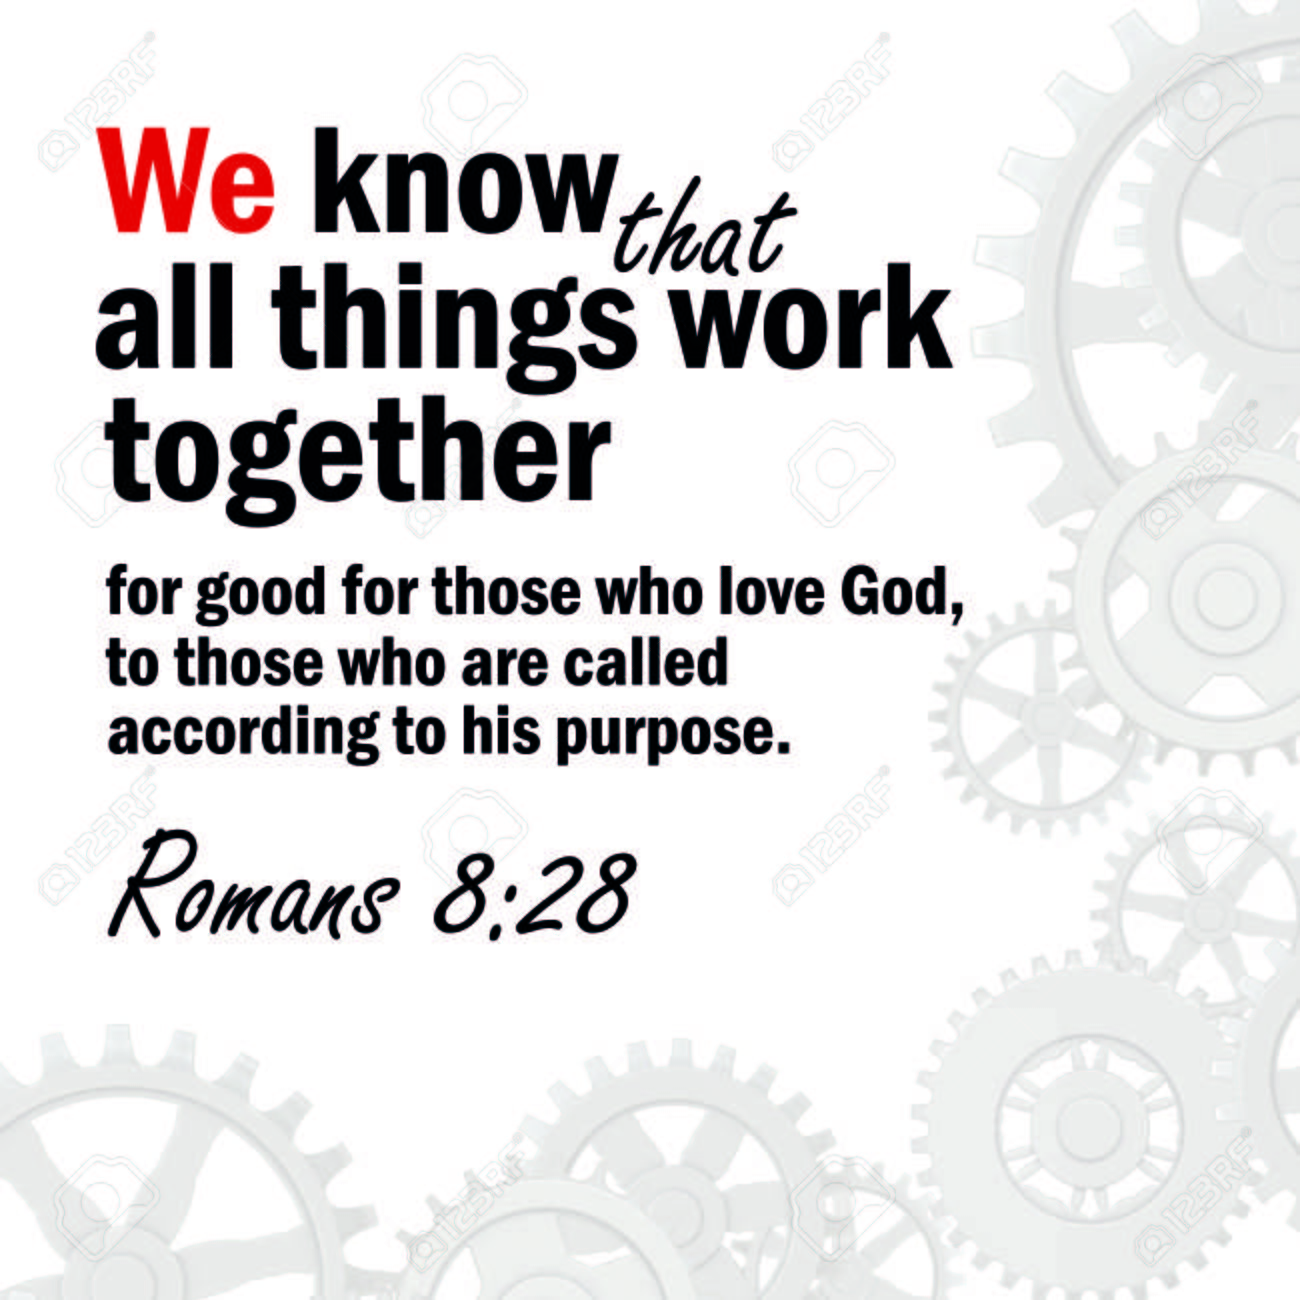 All Things Work Together for Good!